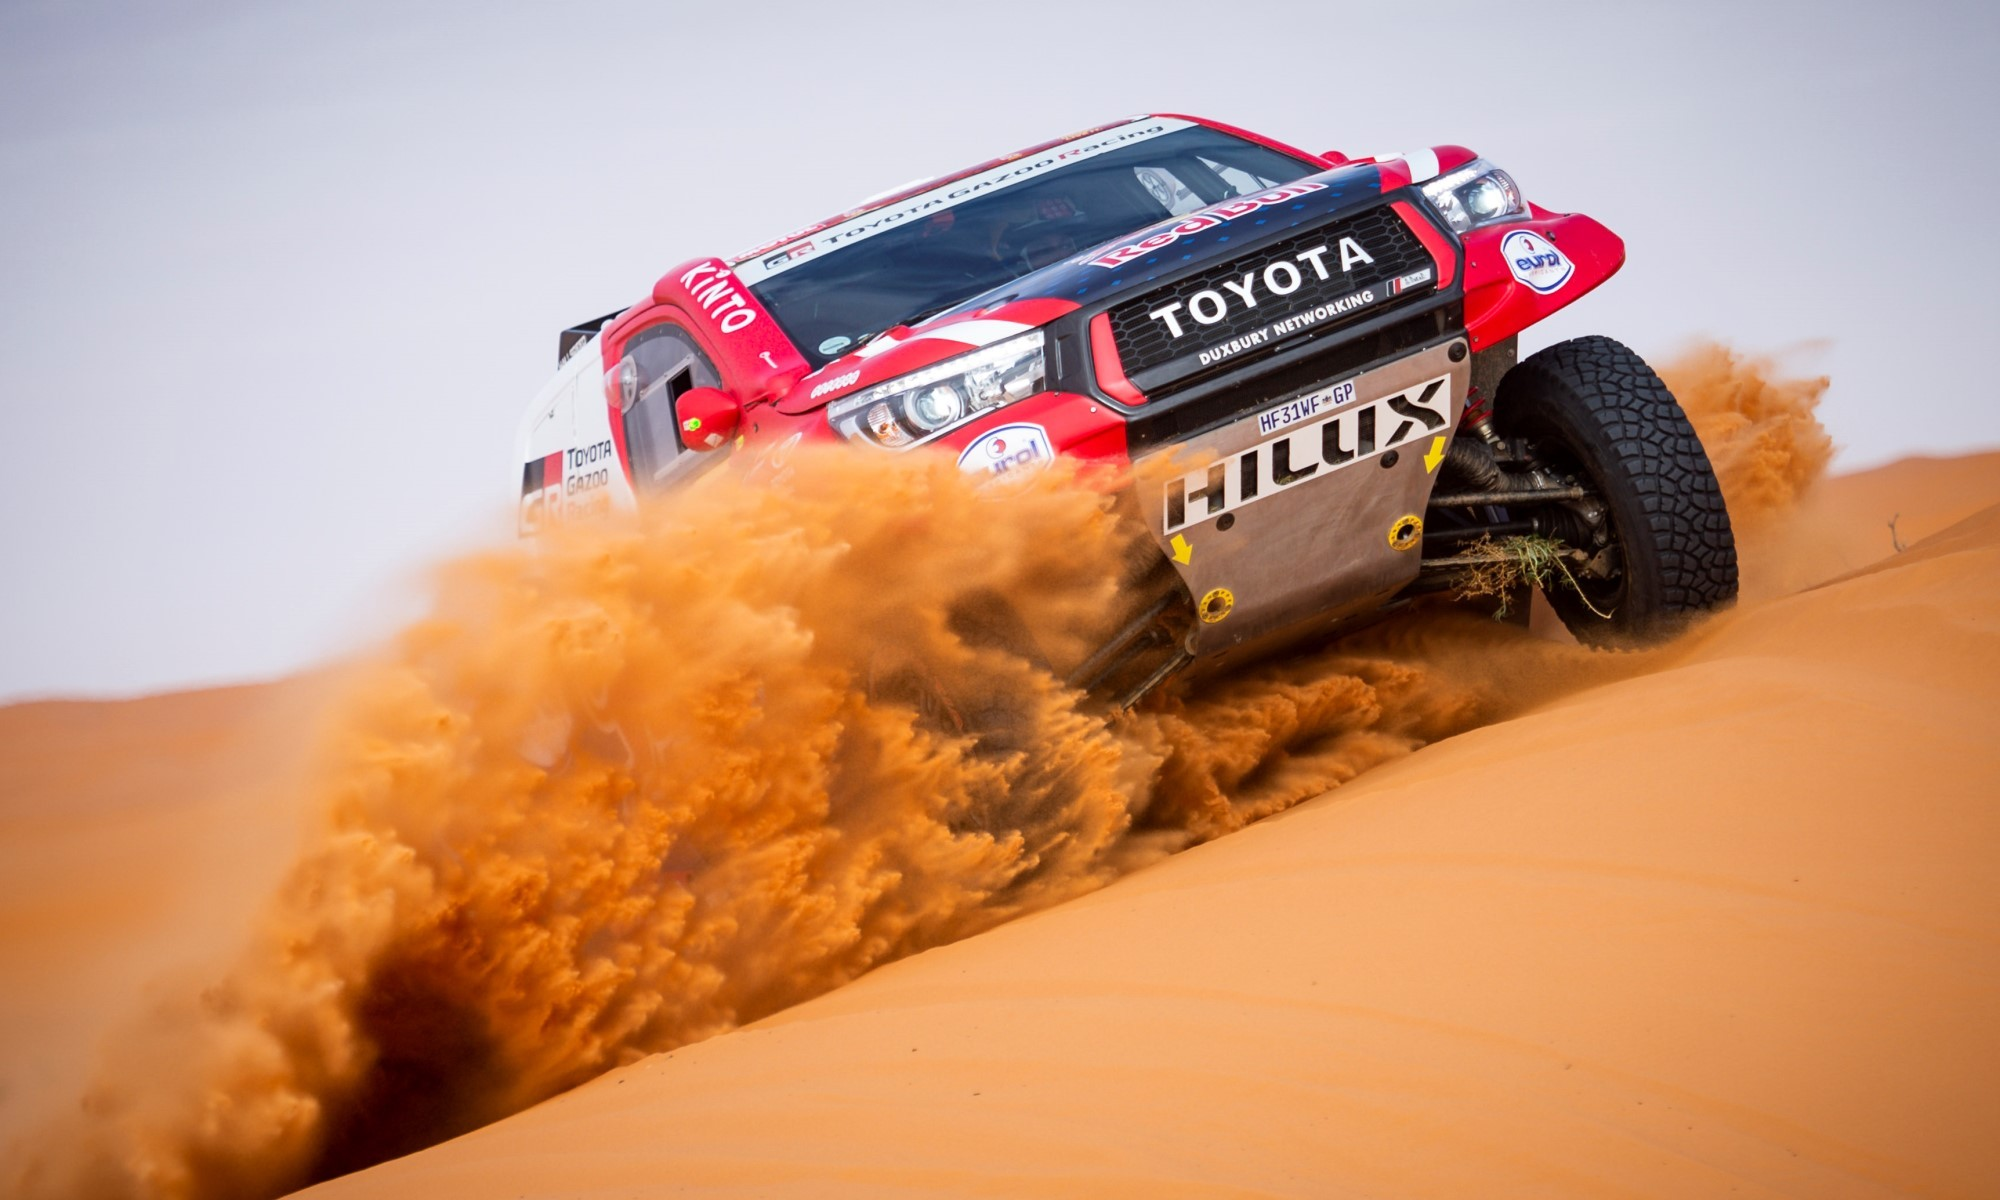 Nasser Al-Attiyah claimed his first win on 2020 Dakar Stage 12, the final leg of the event.